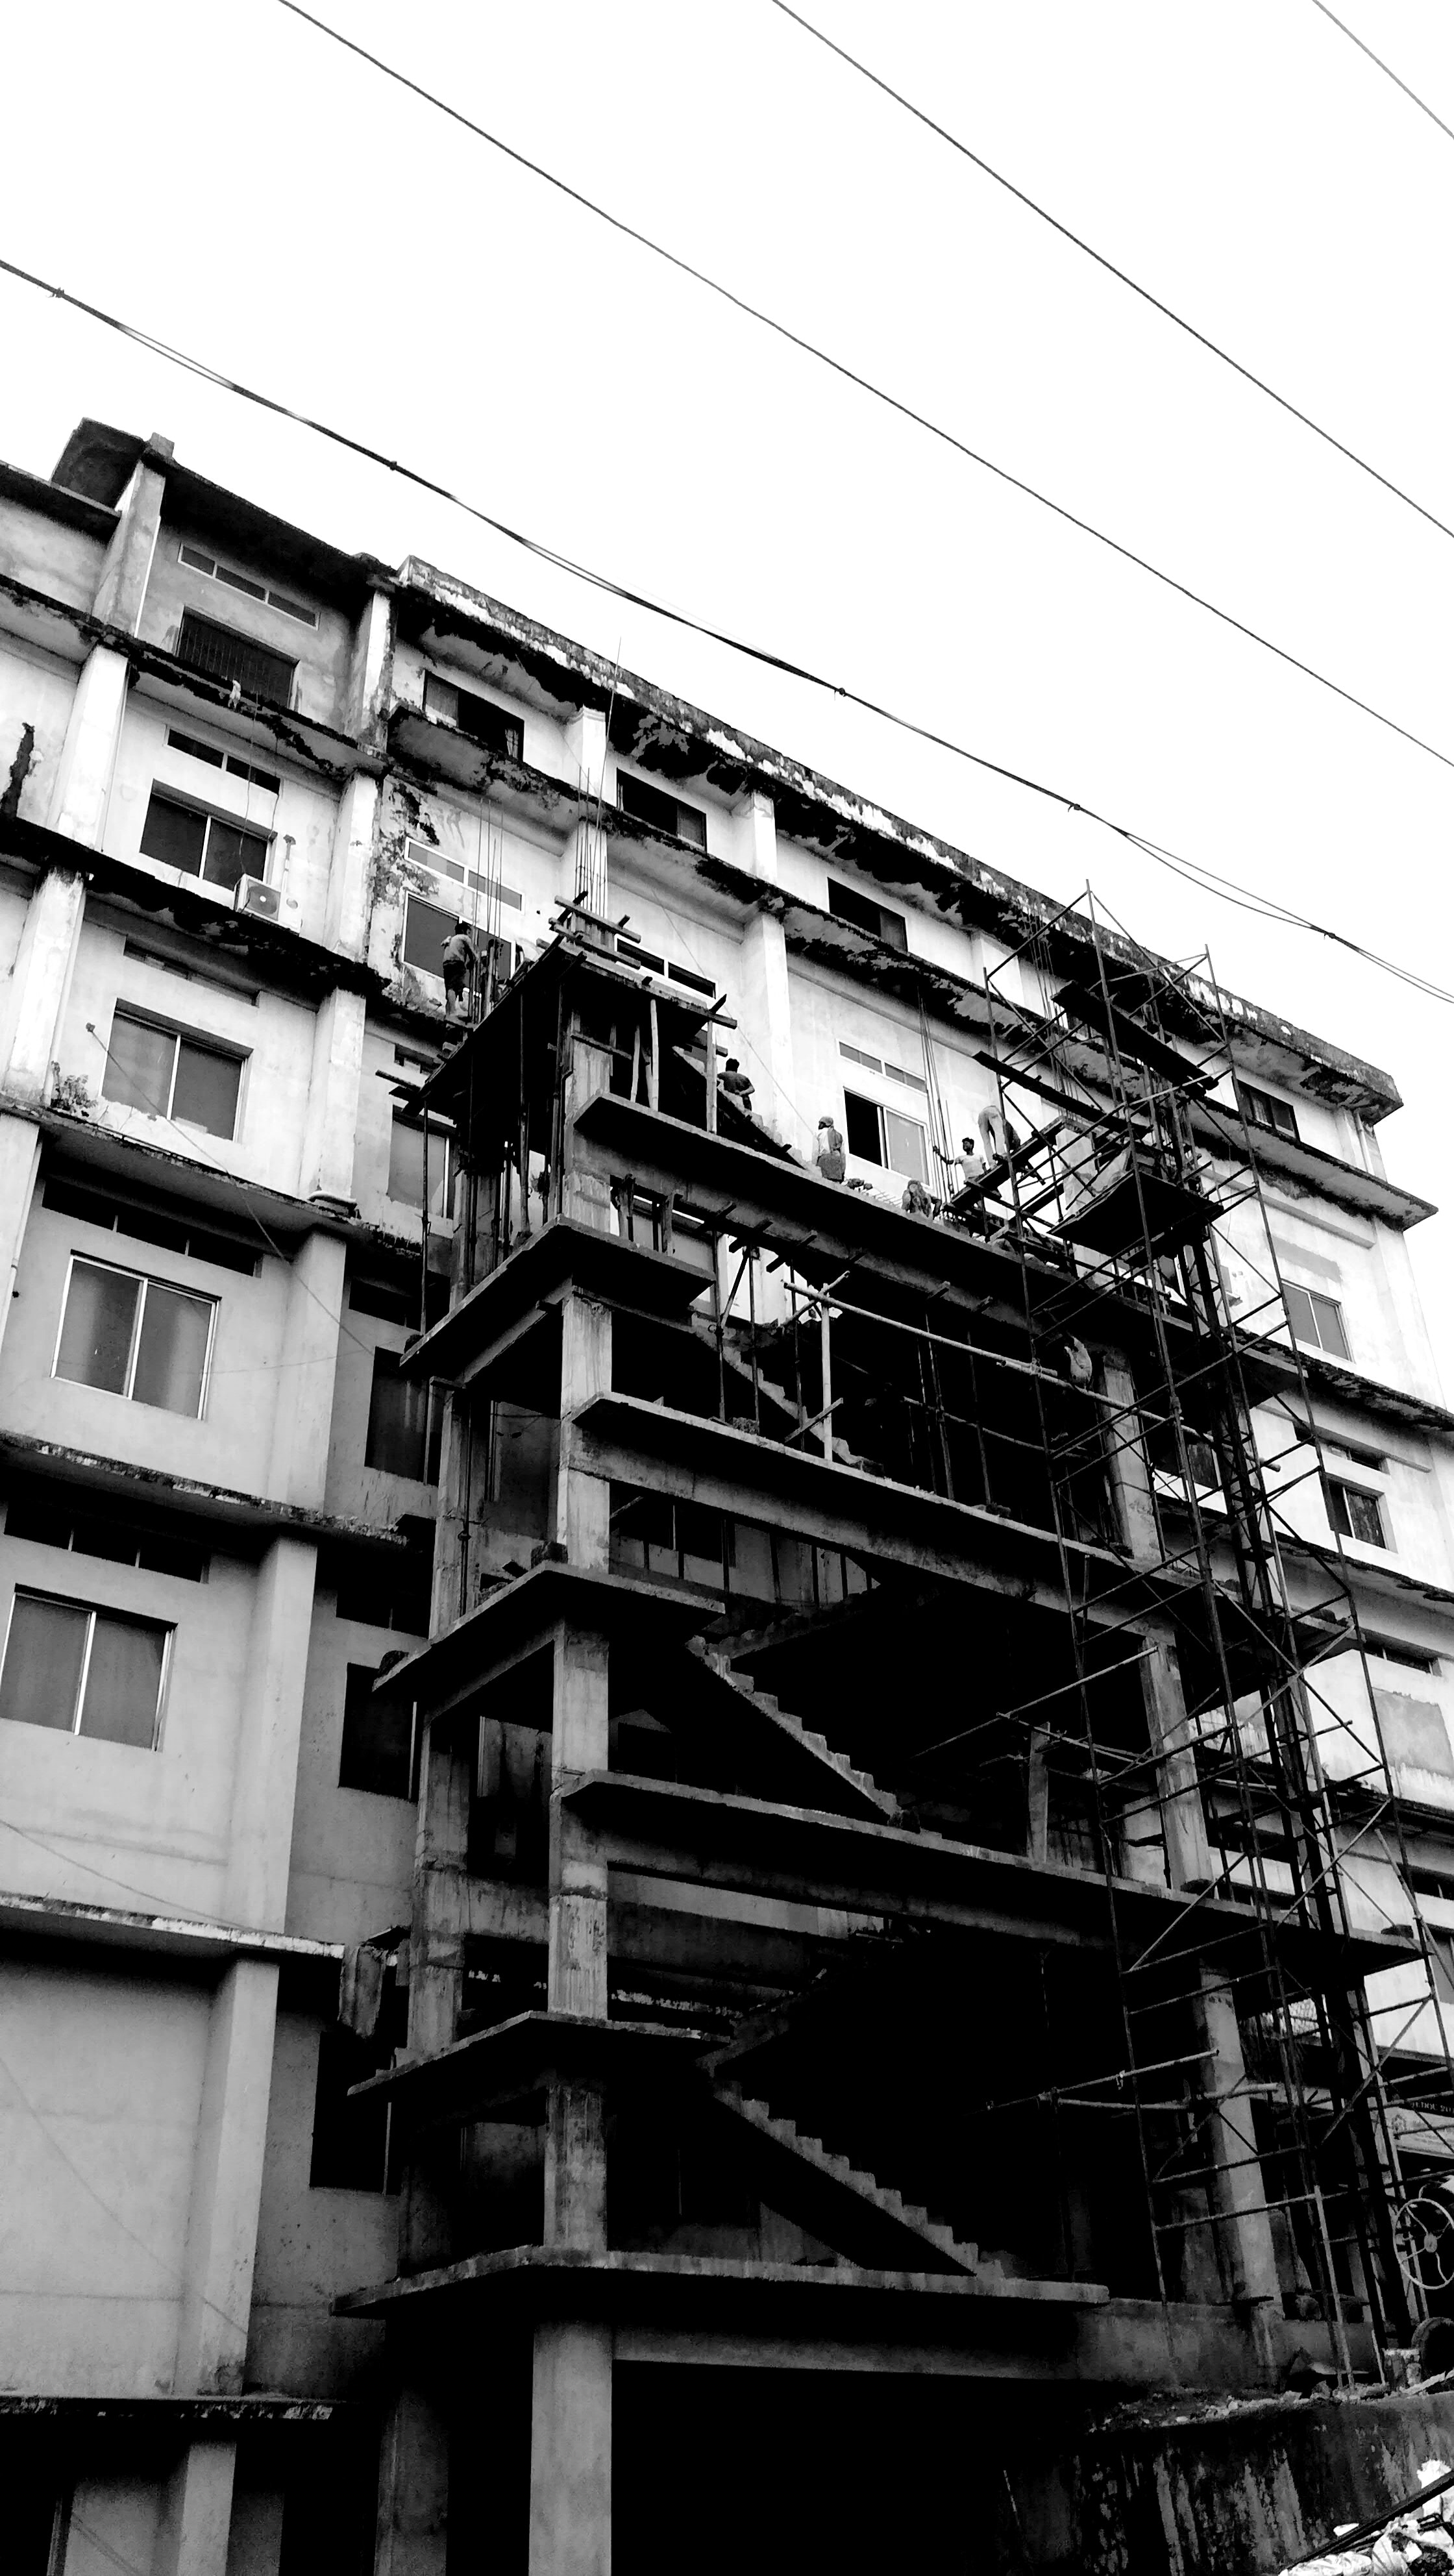 grayscale photo of a building under construction